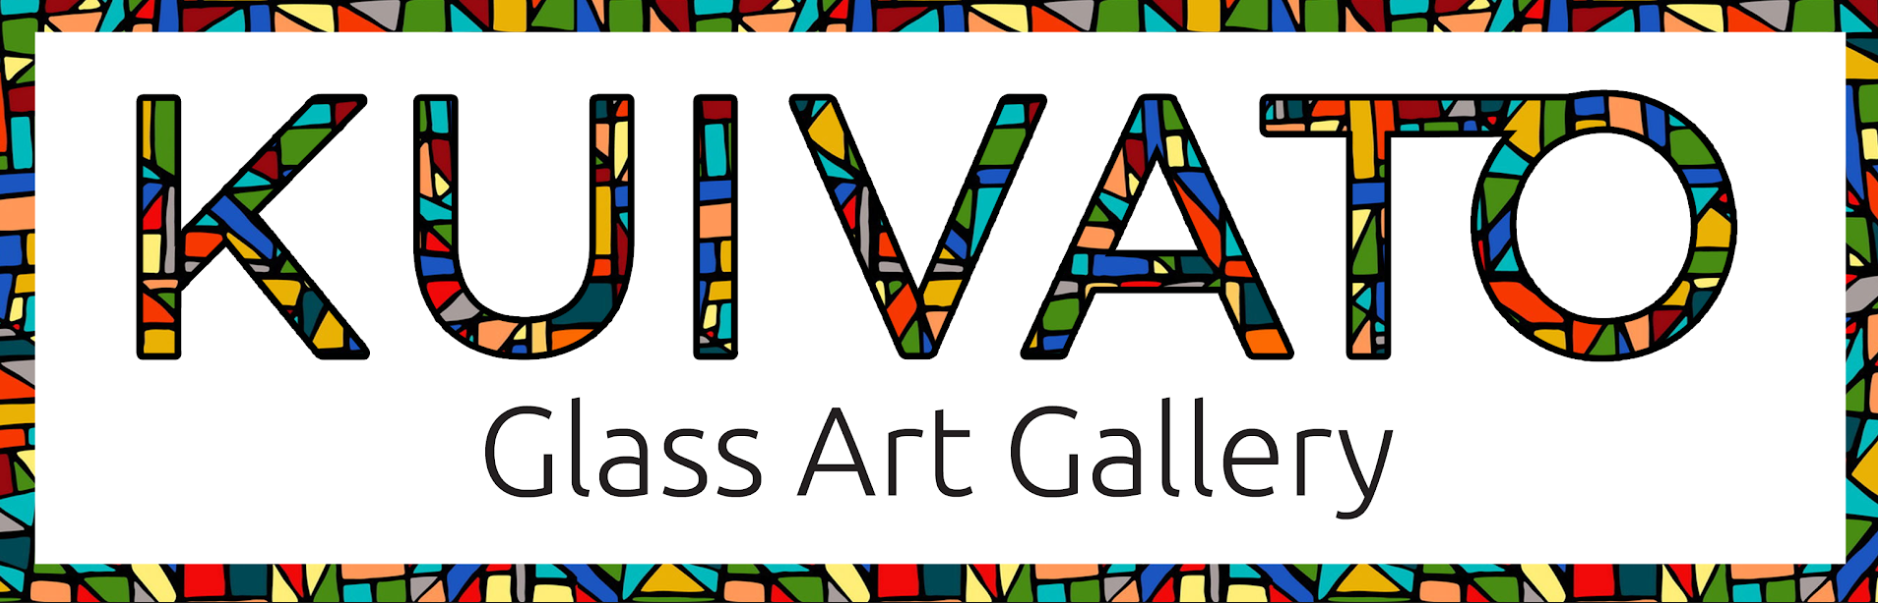 Kuivato Glass Art Gallery Is The Oldest Sedona Art Gallery In The Tlaquepaque Arts & Shopping Center in Sedona, AZ